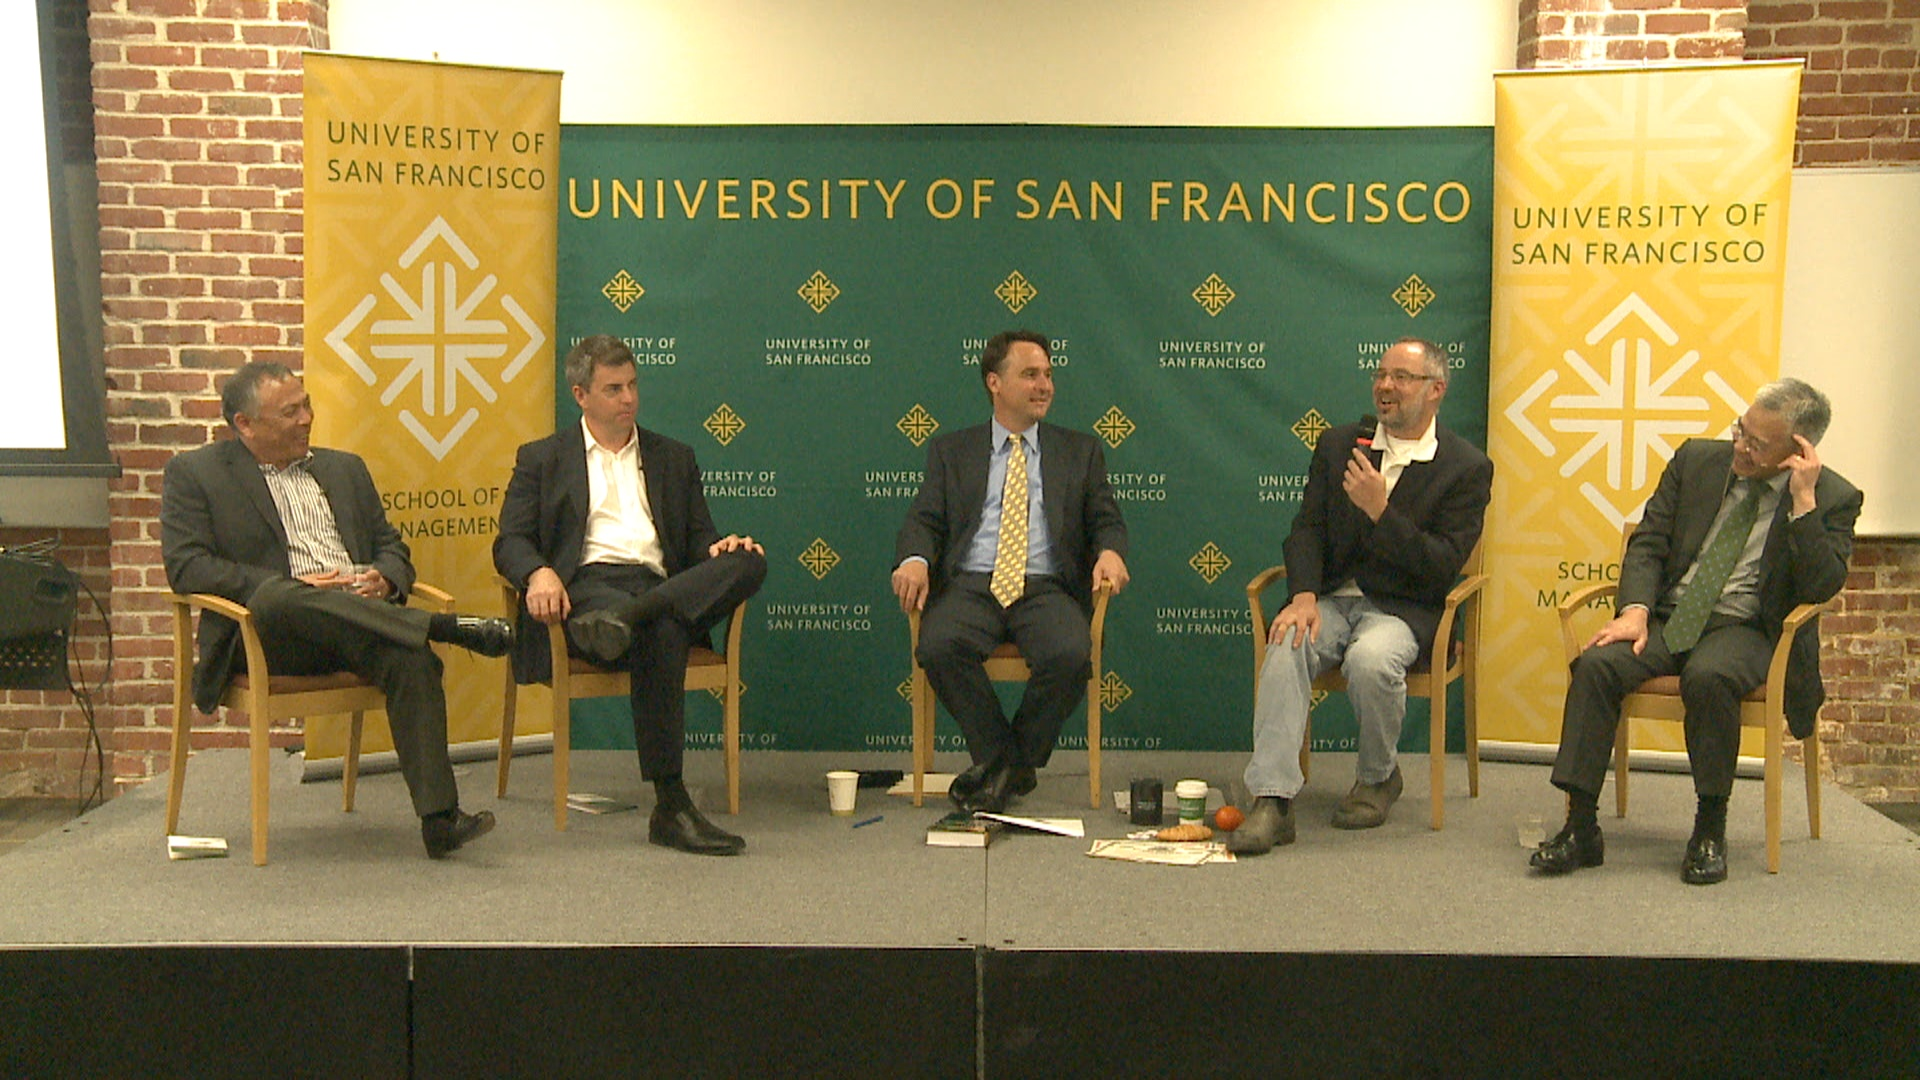 The Price of Oil and Commodity Investing.  Guests:    Mr. Nick Gerber, Mr. John Love, Mr. Andy Ngim, and Mr. Robert Nguyen.